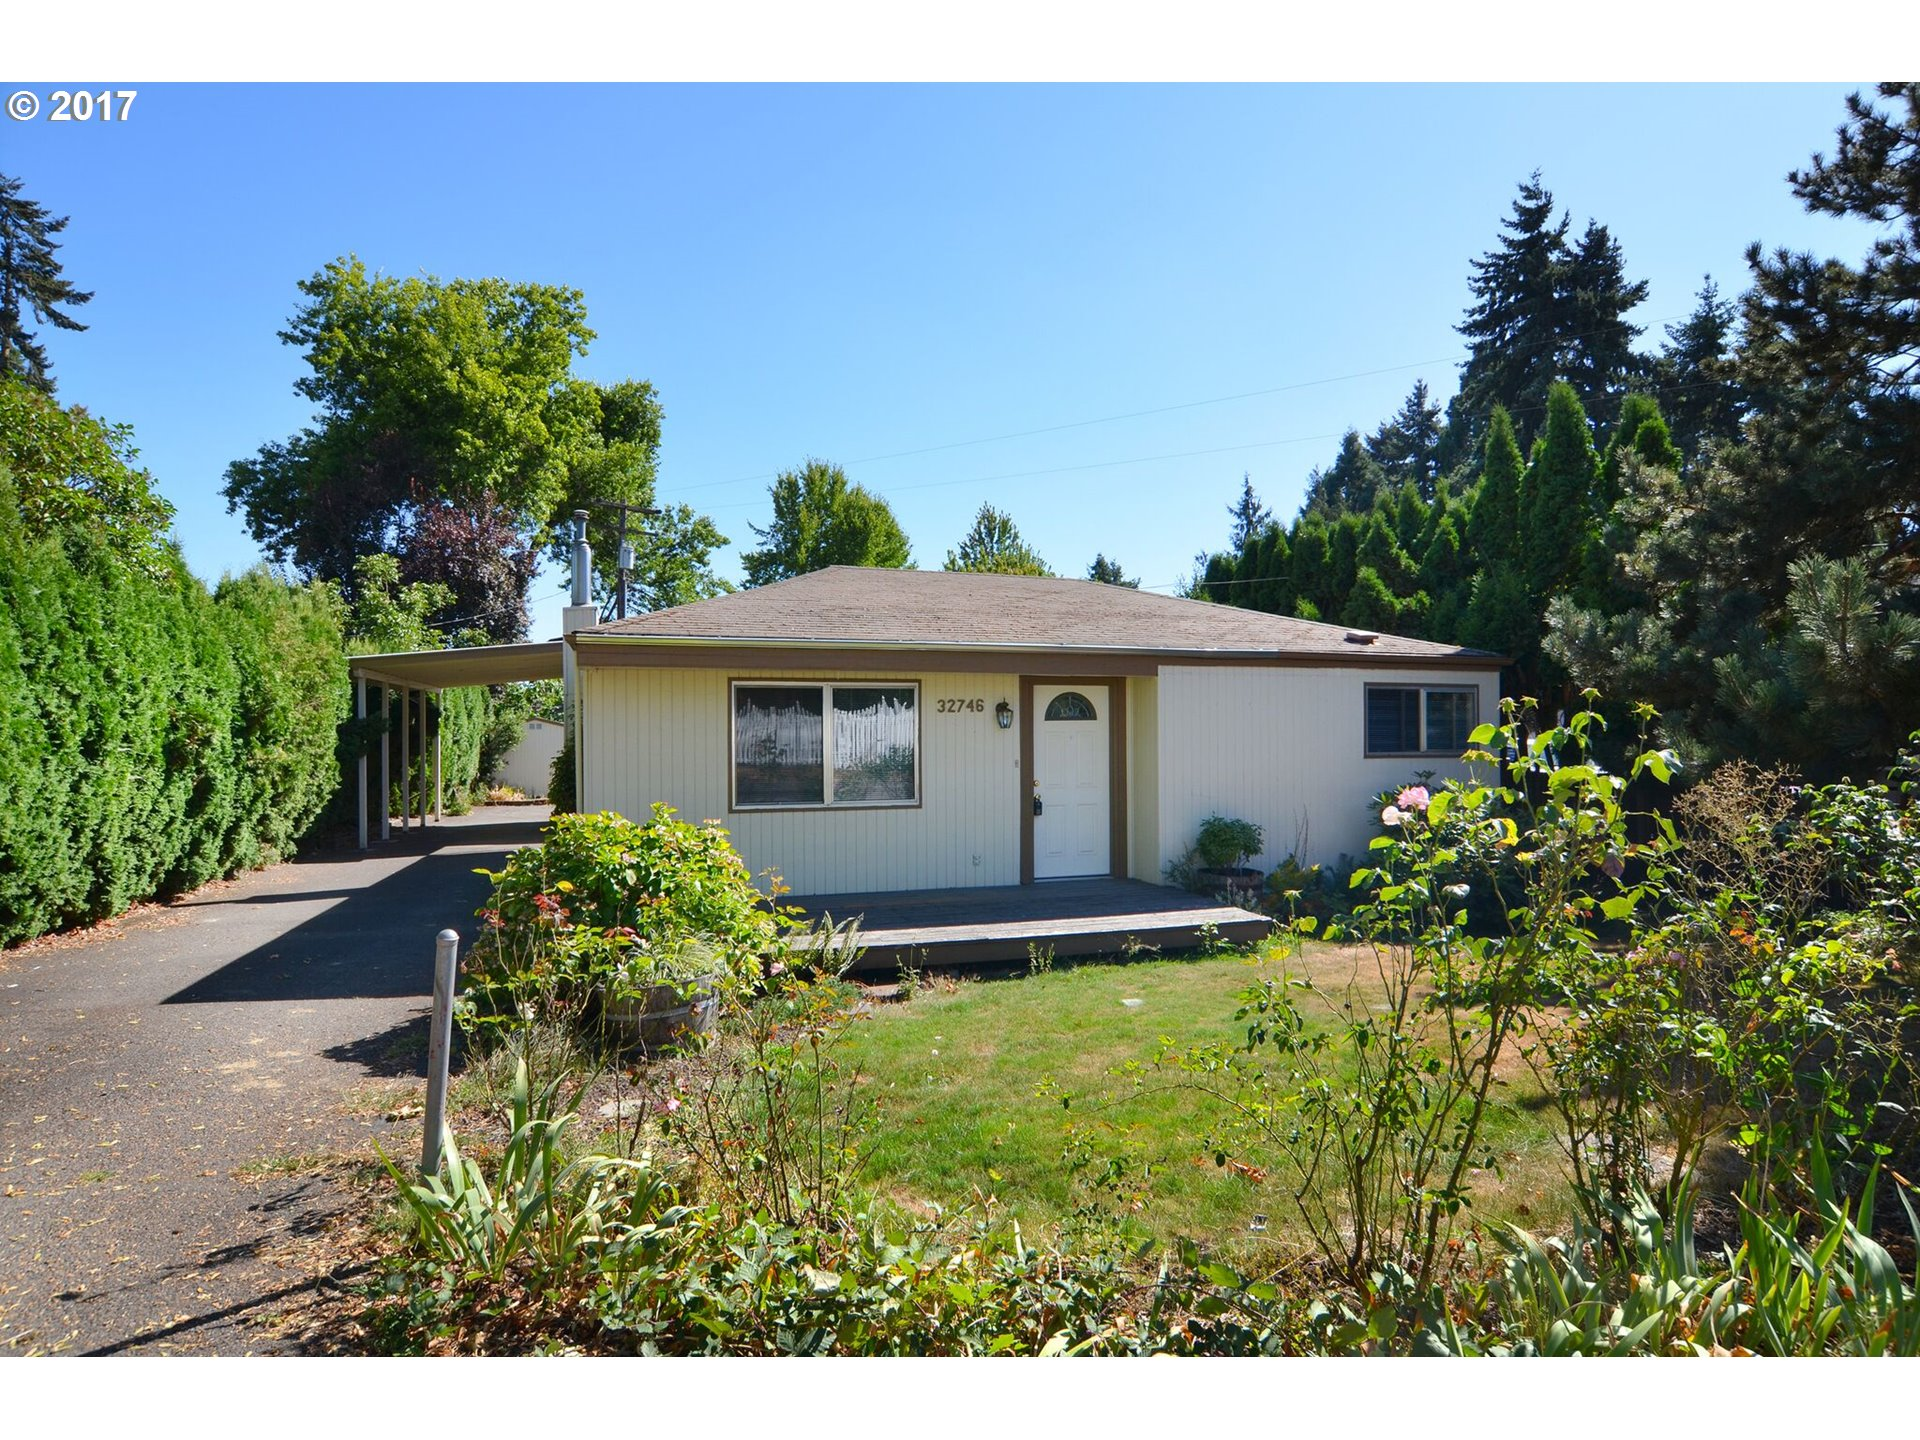 32746 E MAPLE ST, Coburg OR 97408